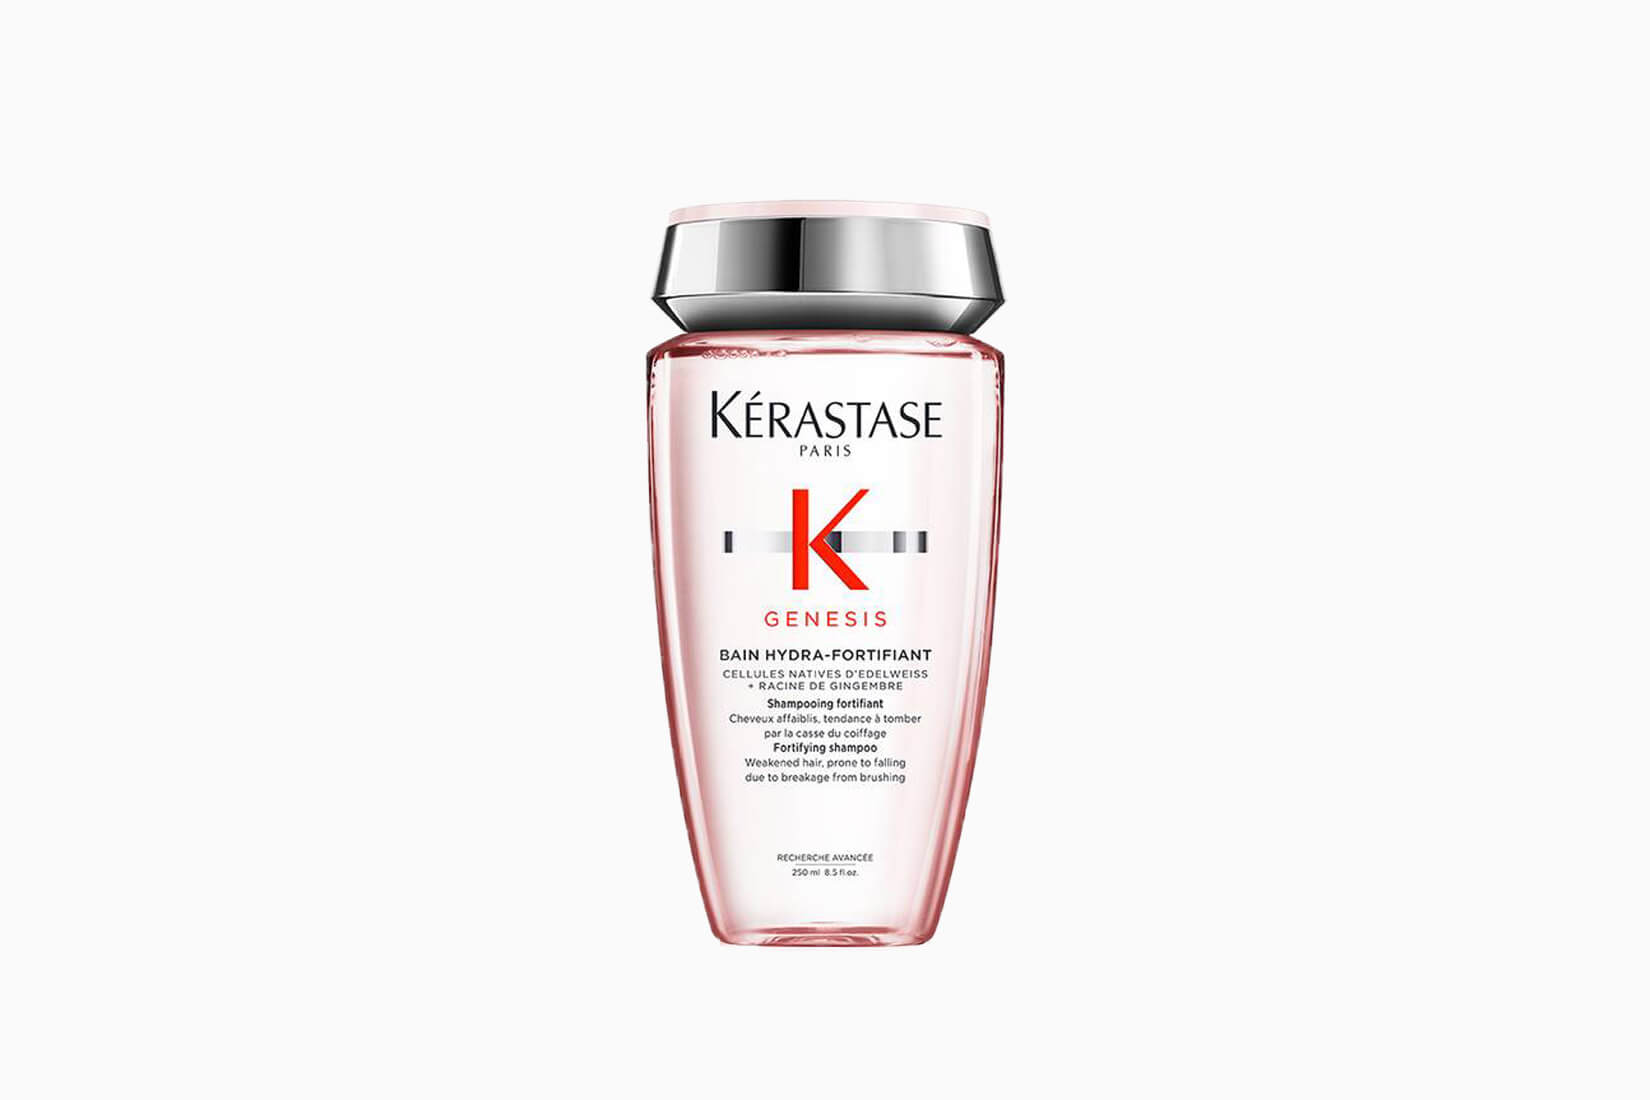 best hair growth shampoo women kerastase genesis review - Luxe Digital